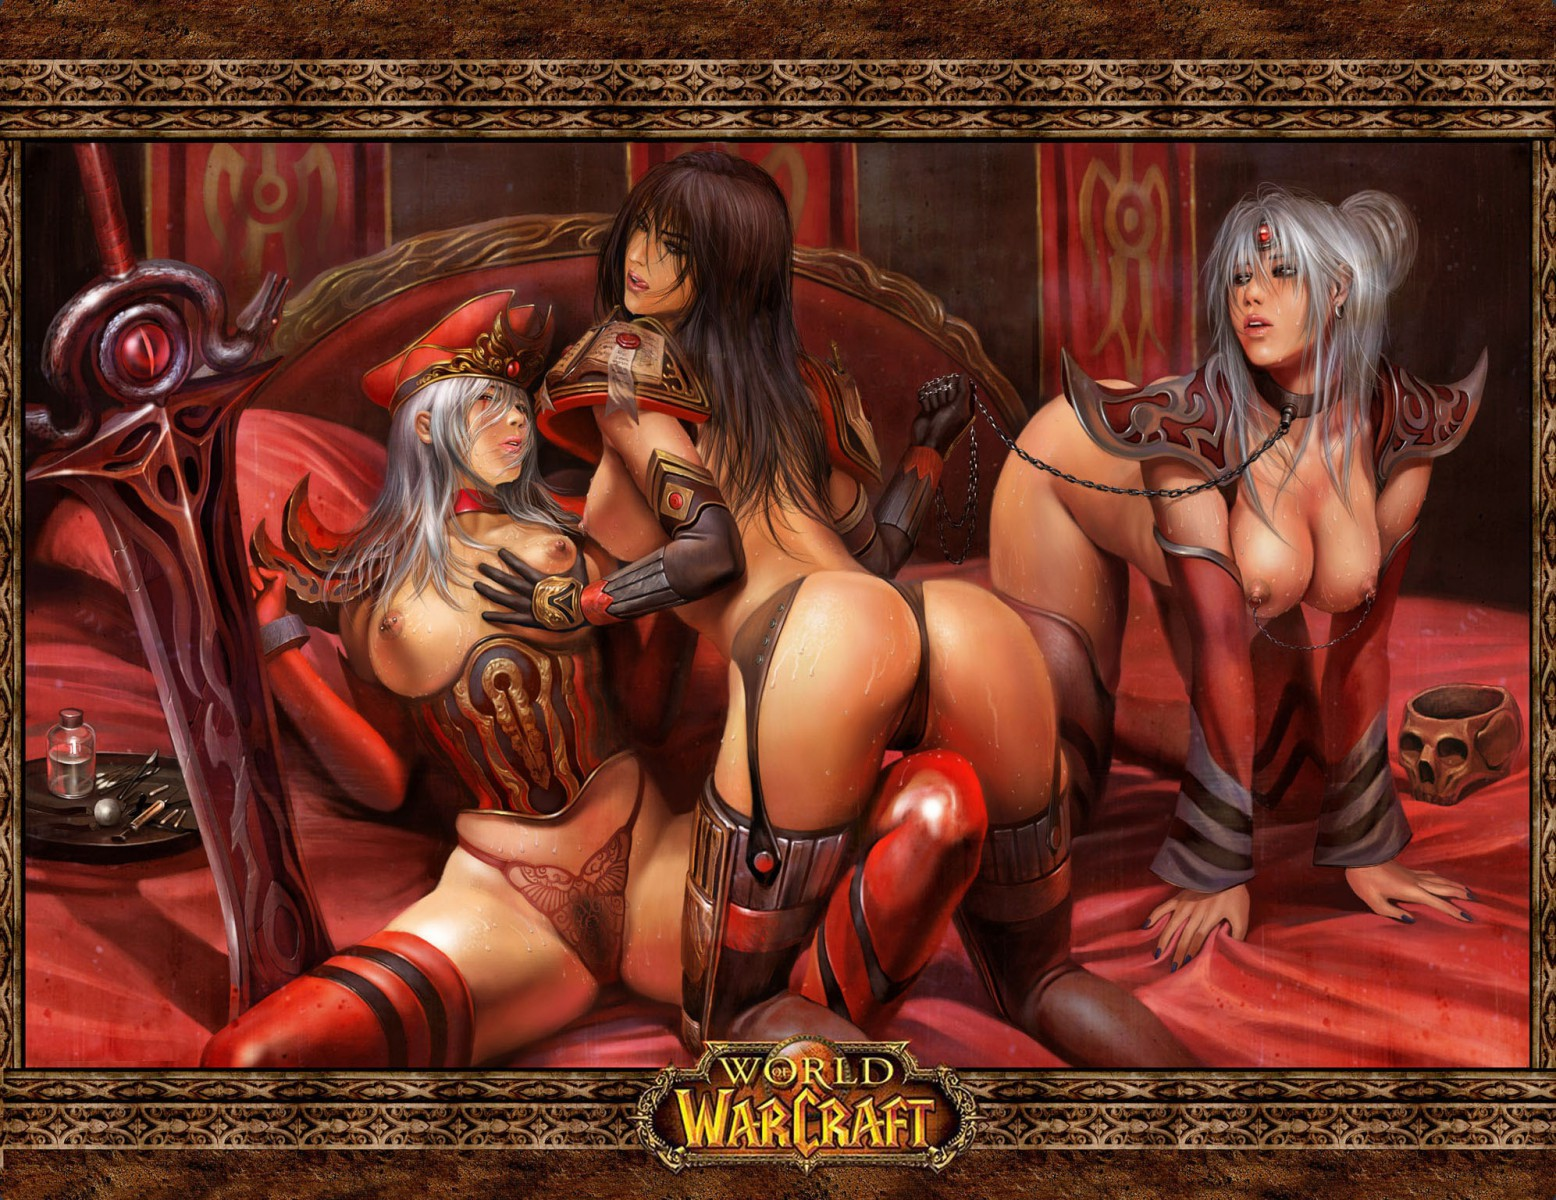 Cartoonporn world of warcraft hentai pron images